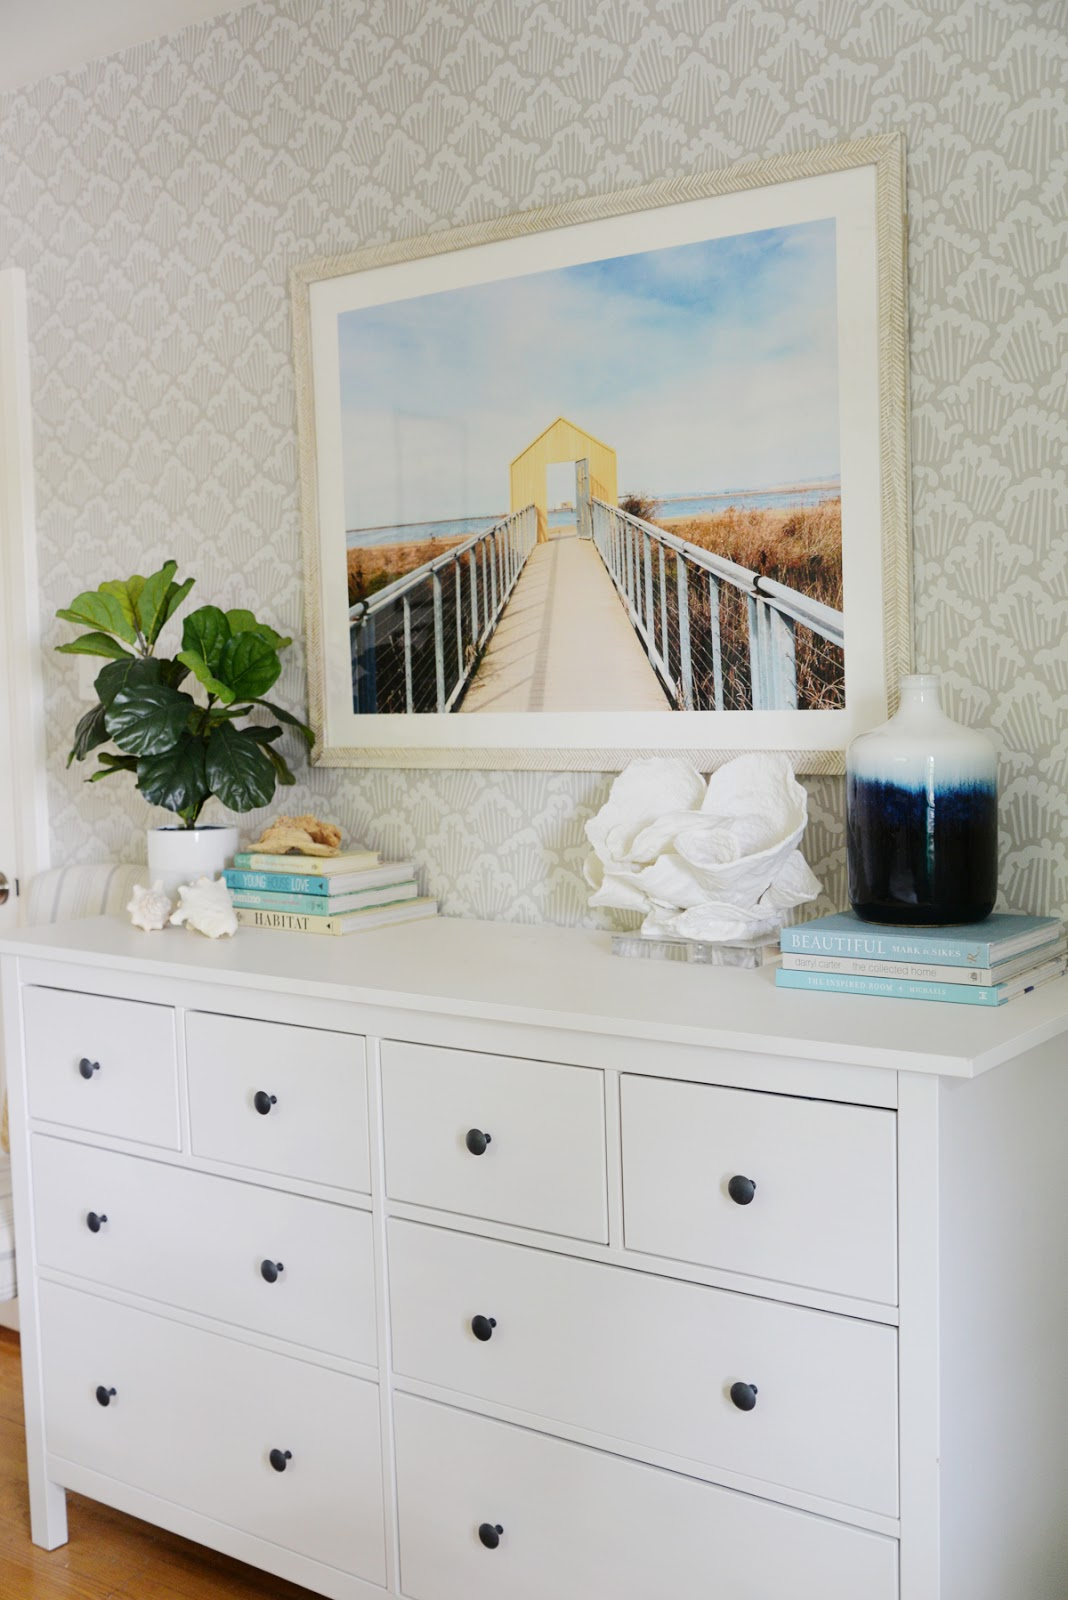 6 easy ways to bring summer into your home, Ramblingrenovators.ca, summer artwork, giant shell, blue white vase